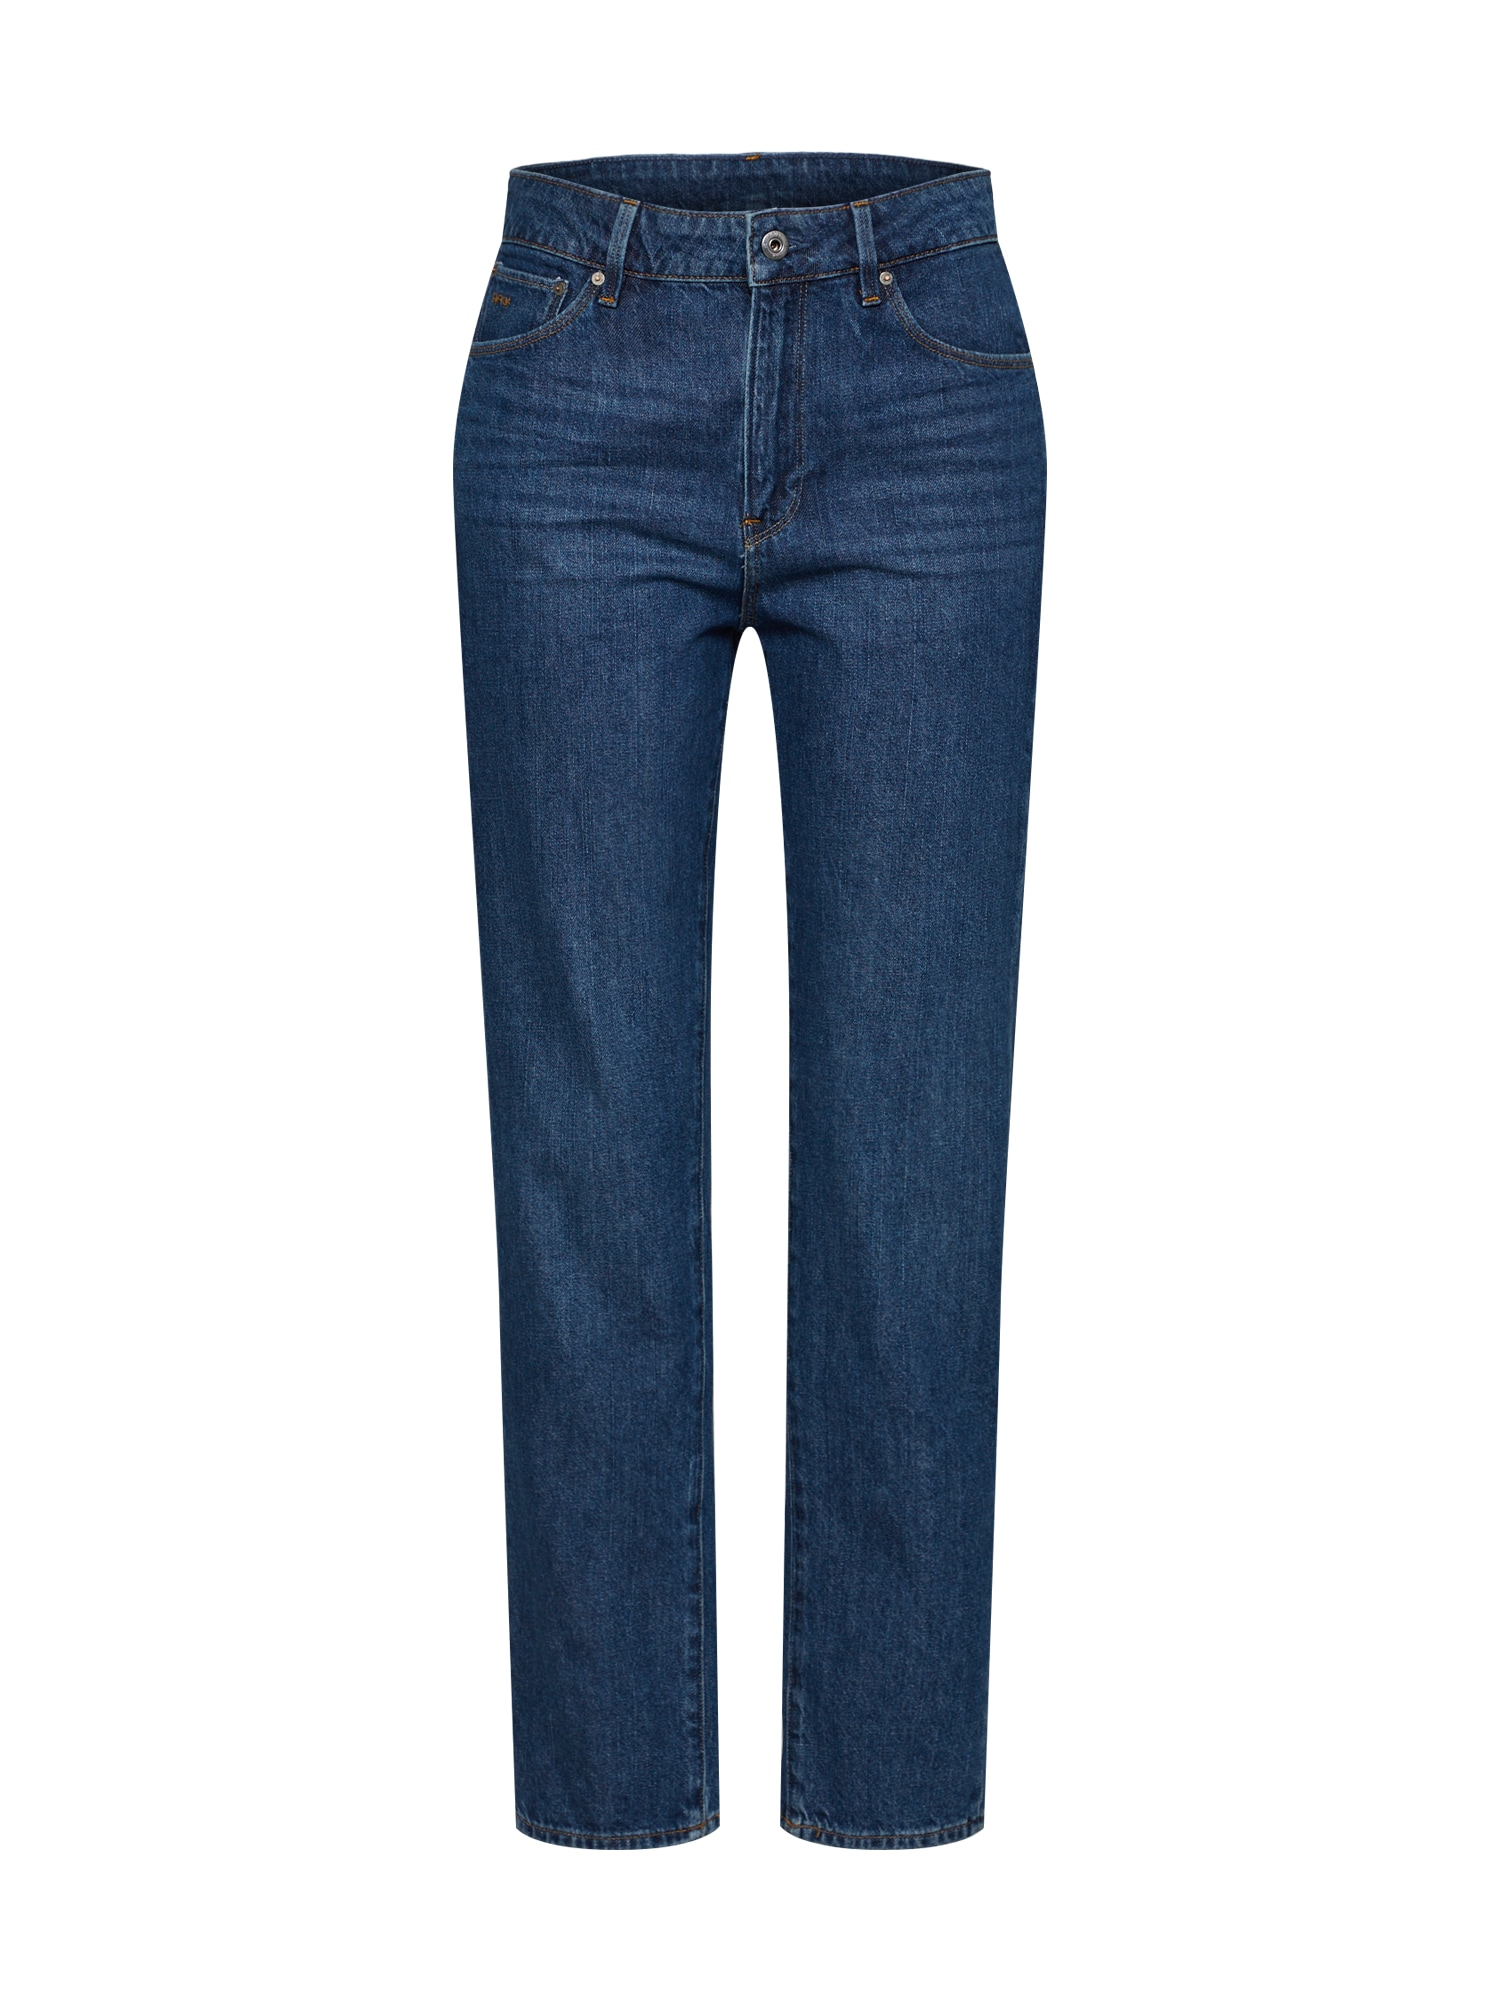 Džíny 3301 High Straight 90s Ankle Wmn modrá G-STAR RAW